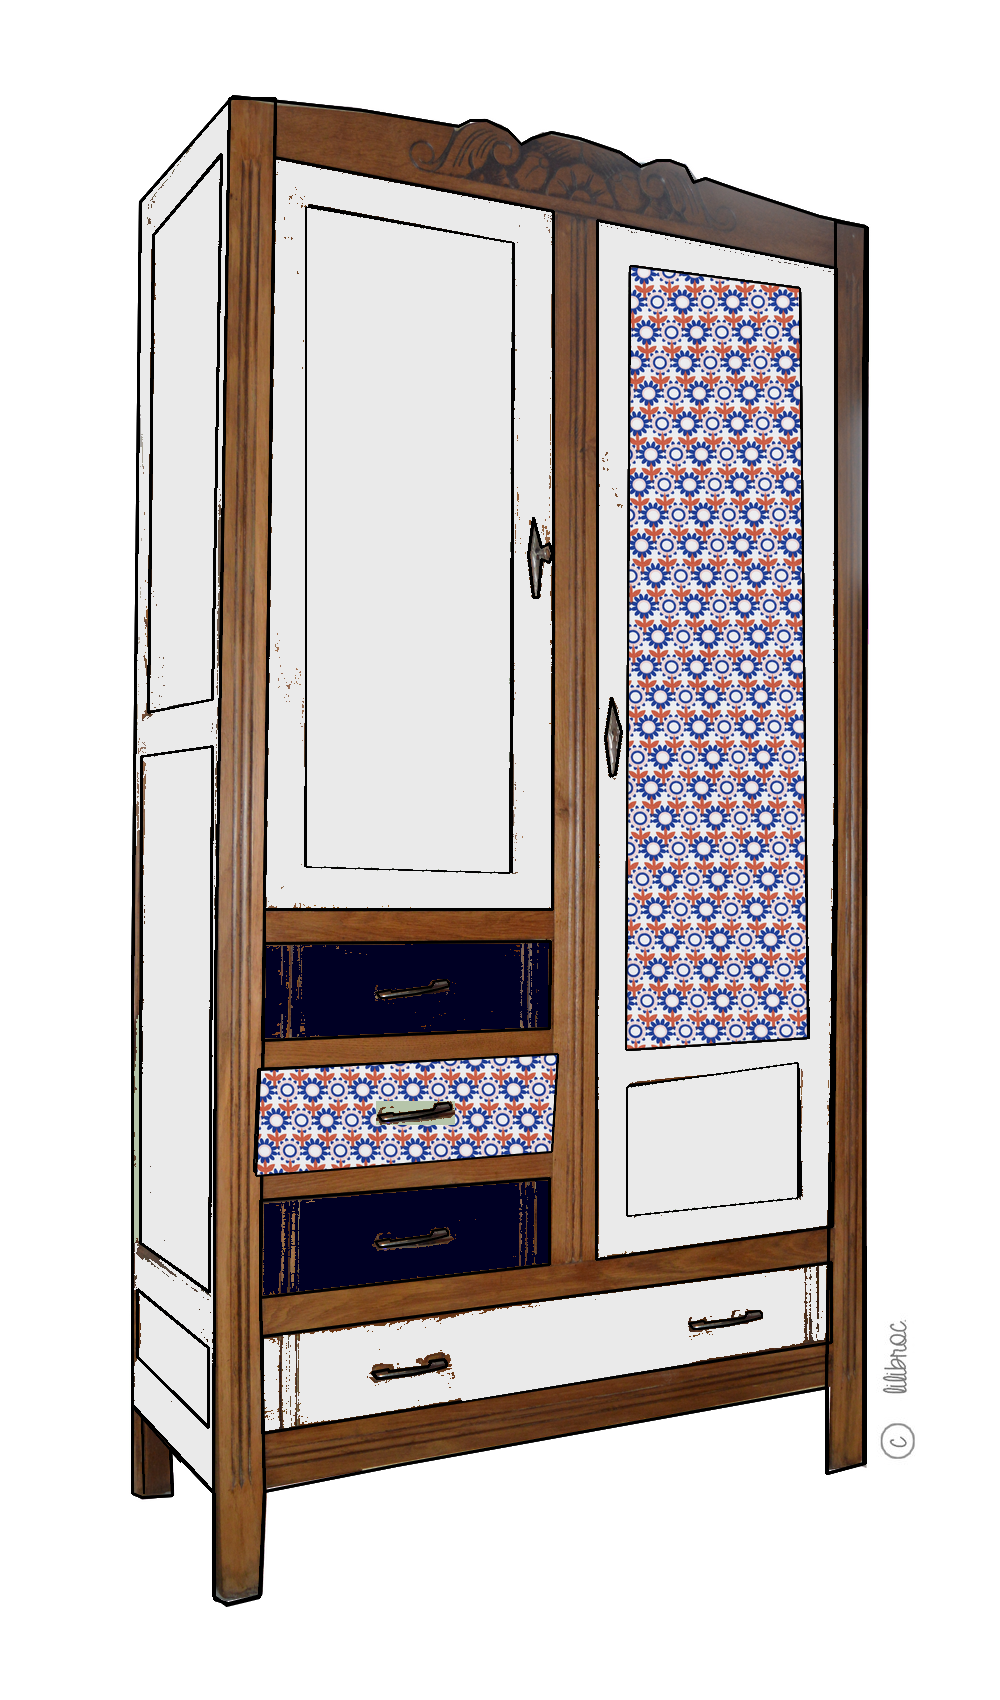 Armoire vintage ma lle croquis de relooking lilibroc - Relooking armoire ...